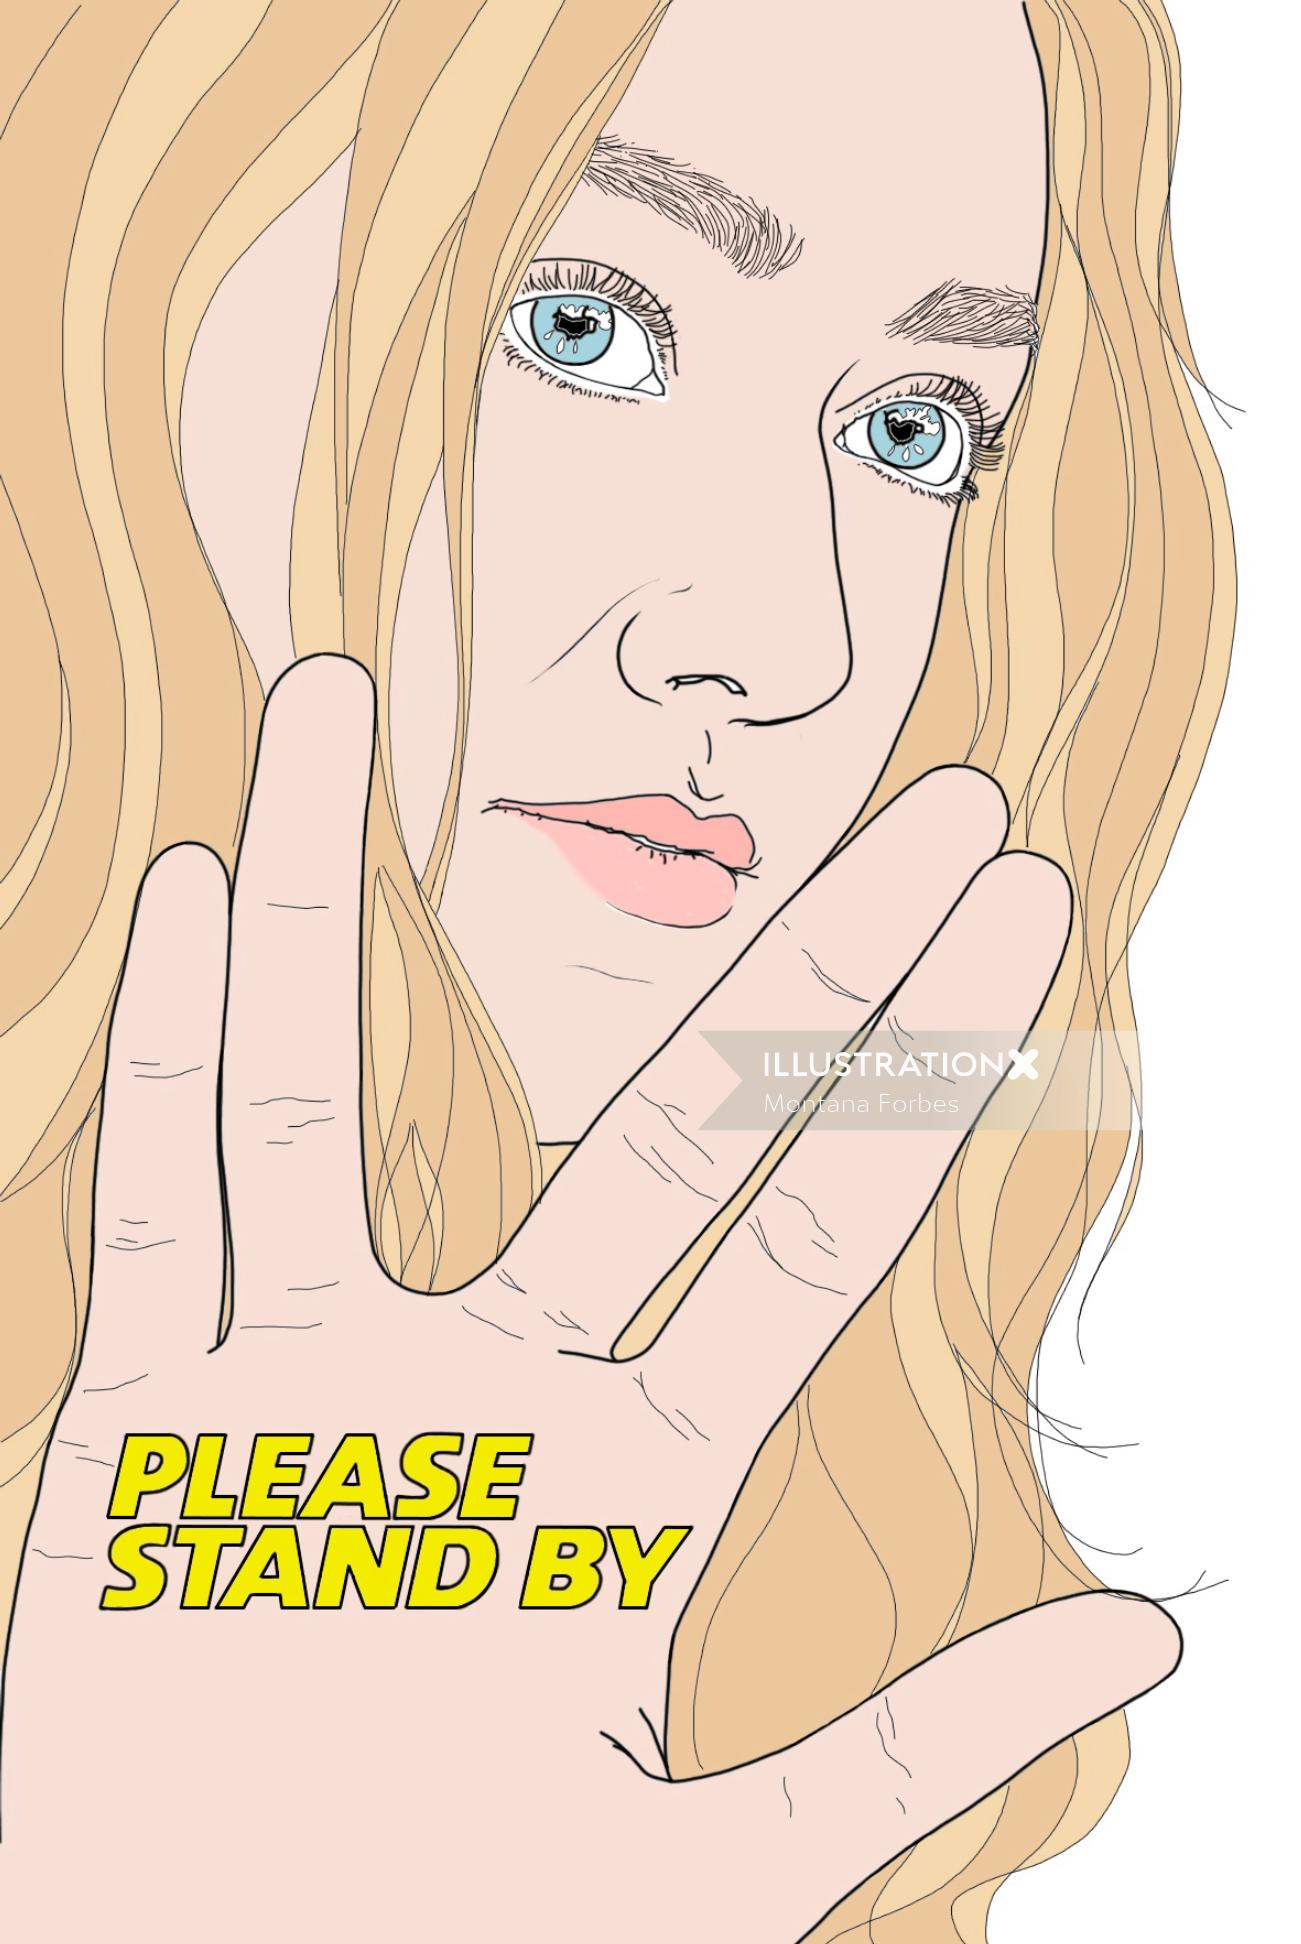 Dakota Fanning portrait art